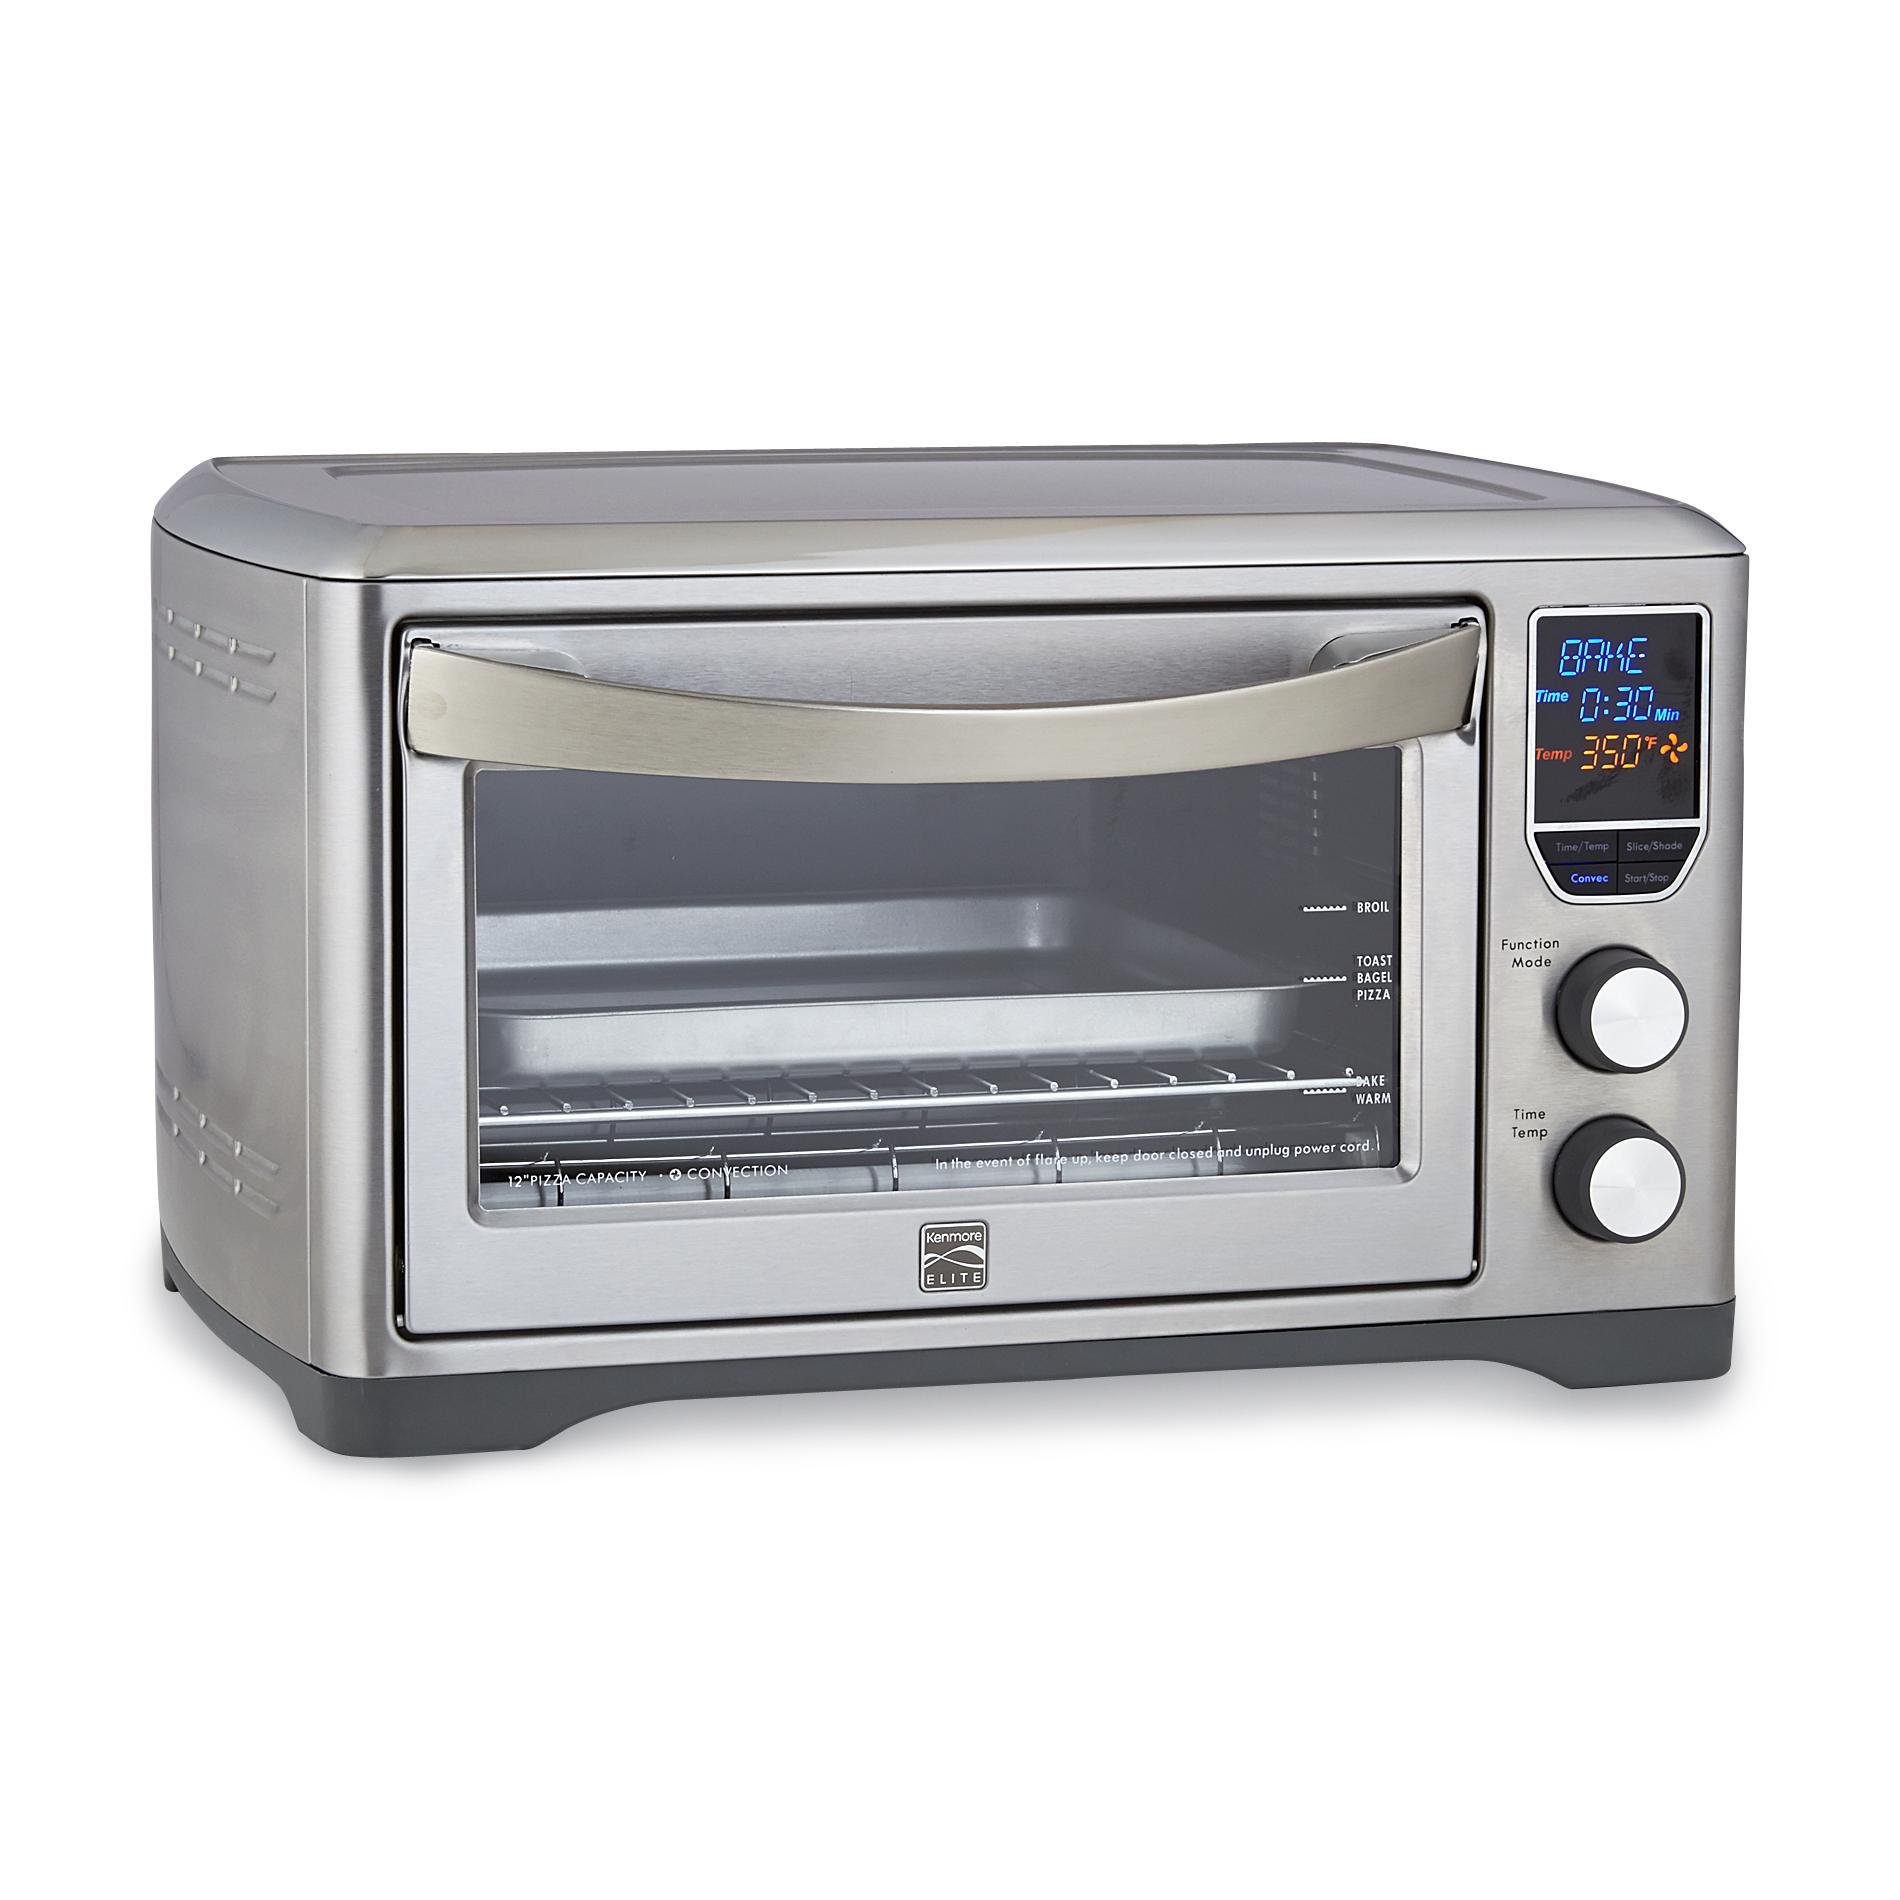 Convention Oven Kenmore Elite 125099 Digital Countertop Convection Oven